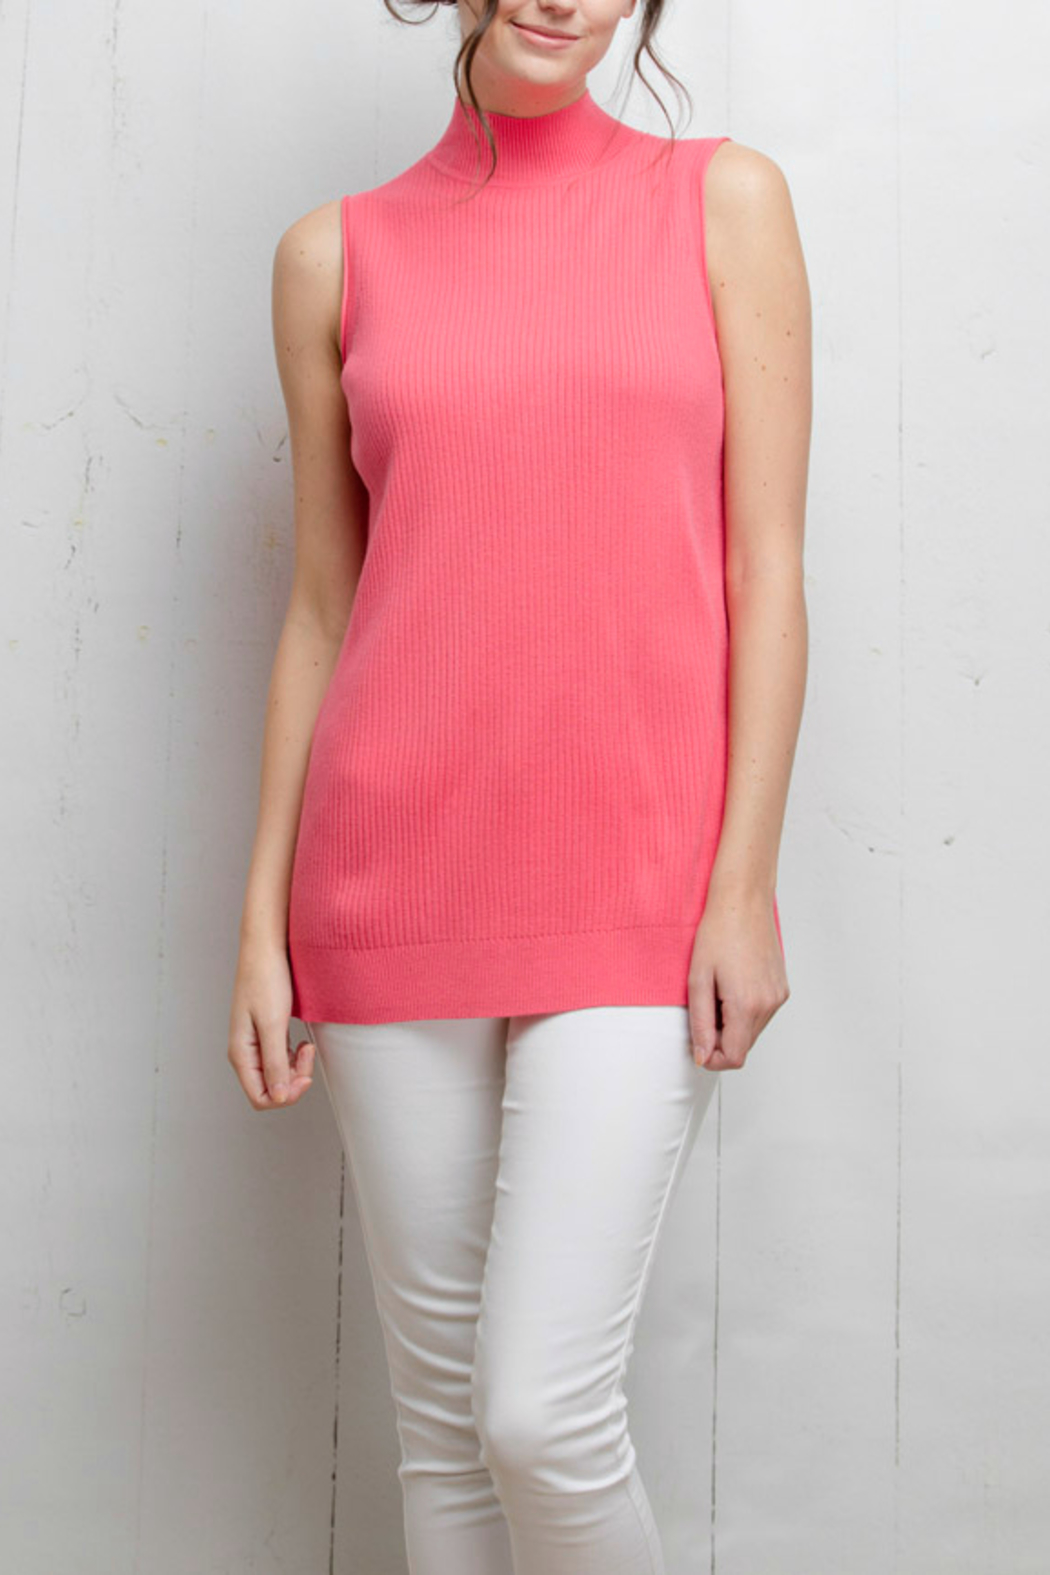 Tyler Boe Pink Sleeveless Sweater Top - Front Cropped Image